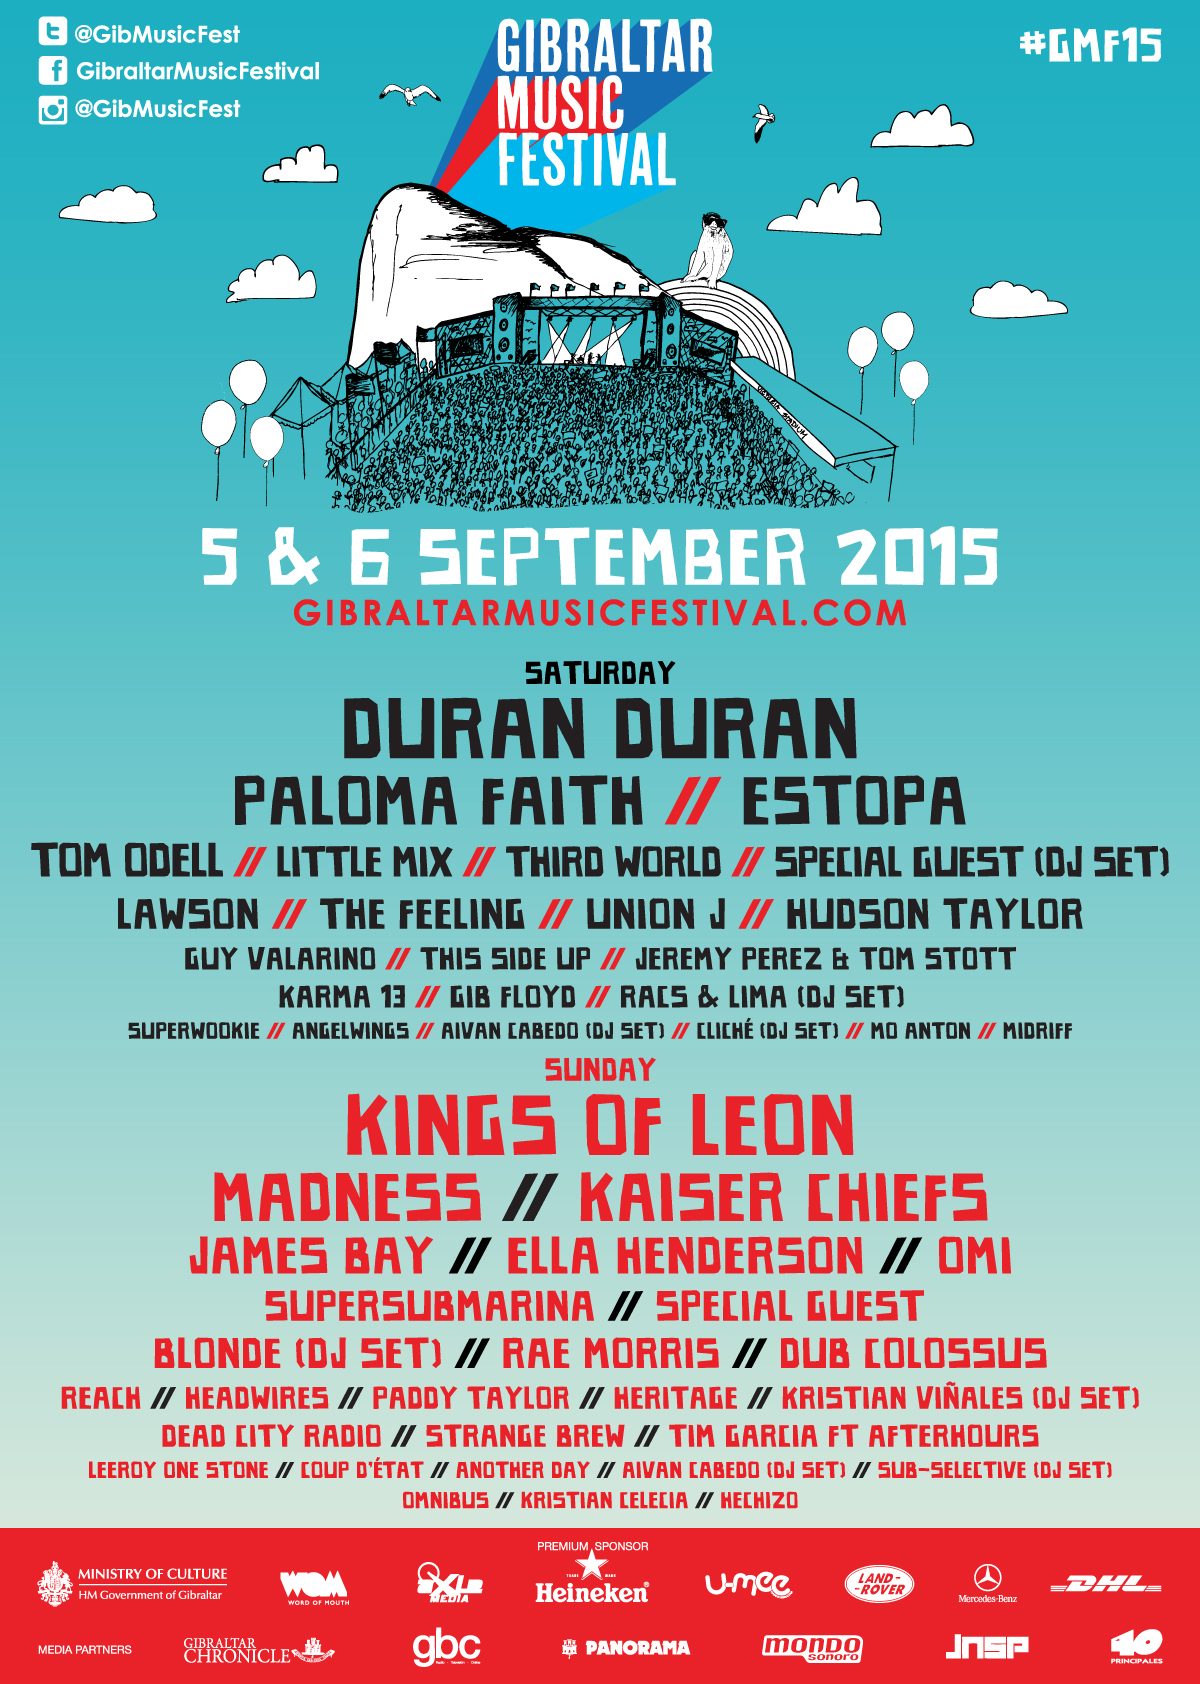 Gibraltar Music Festival – 5th & 6th Sept. 2015